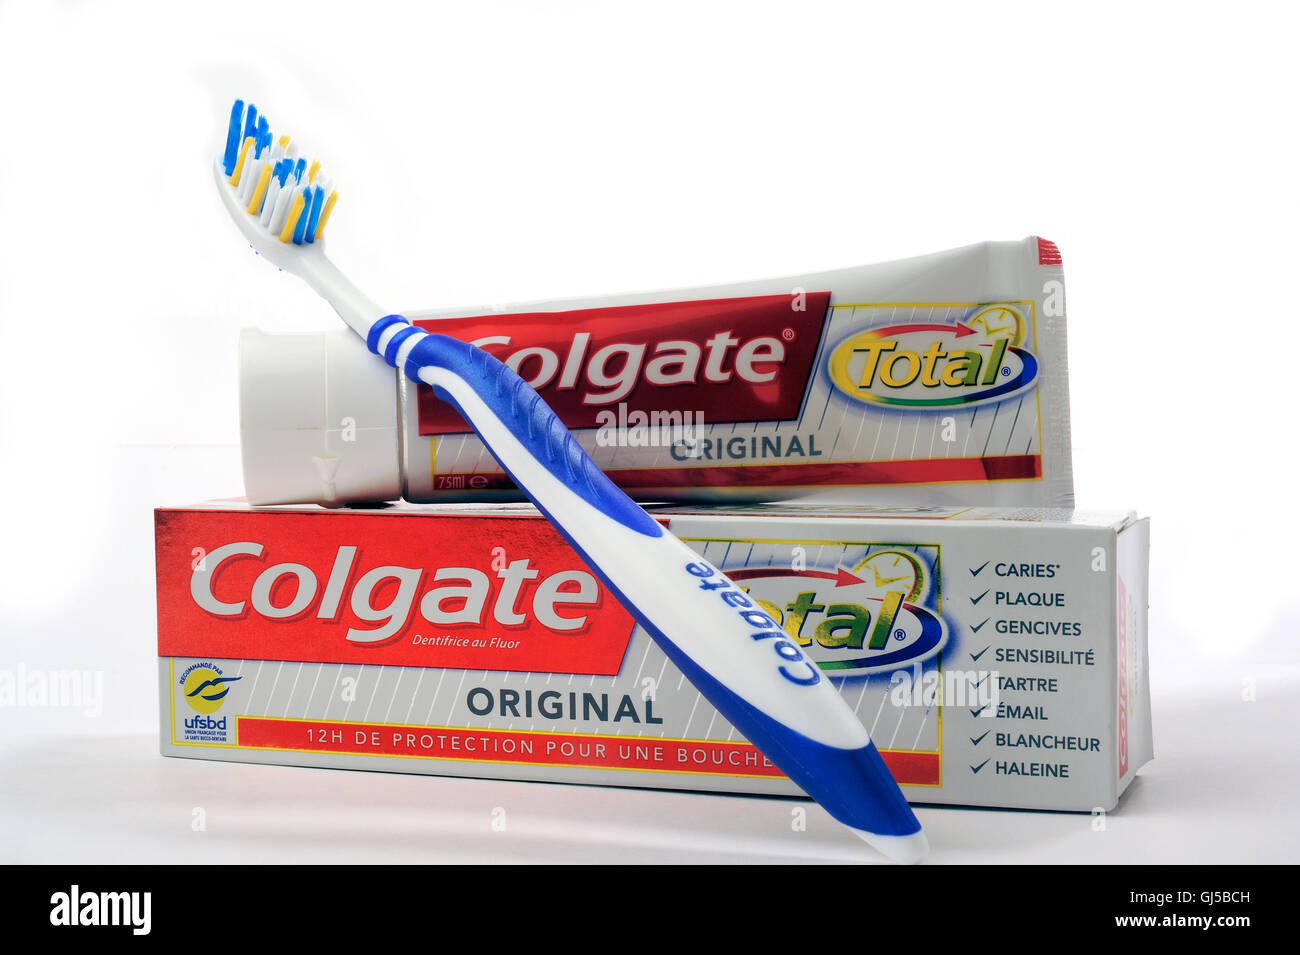 a study on consumer buying behavior towards colgate toothpaste Buying behaviour of electronic products in andhra pradesh consumer behavior as a study of responses (kardes) consumer behavior6 is to understand how a consumer.